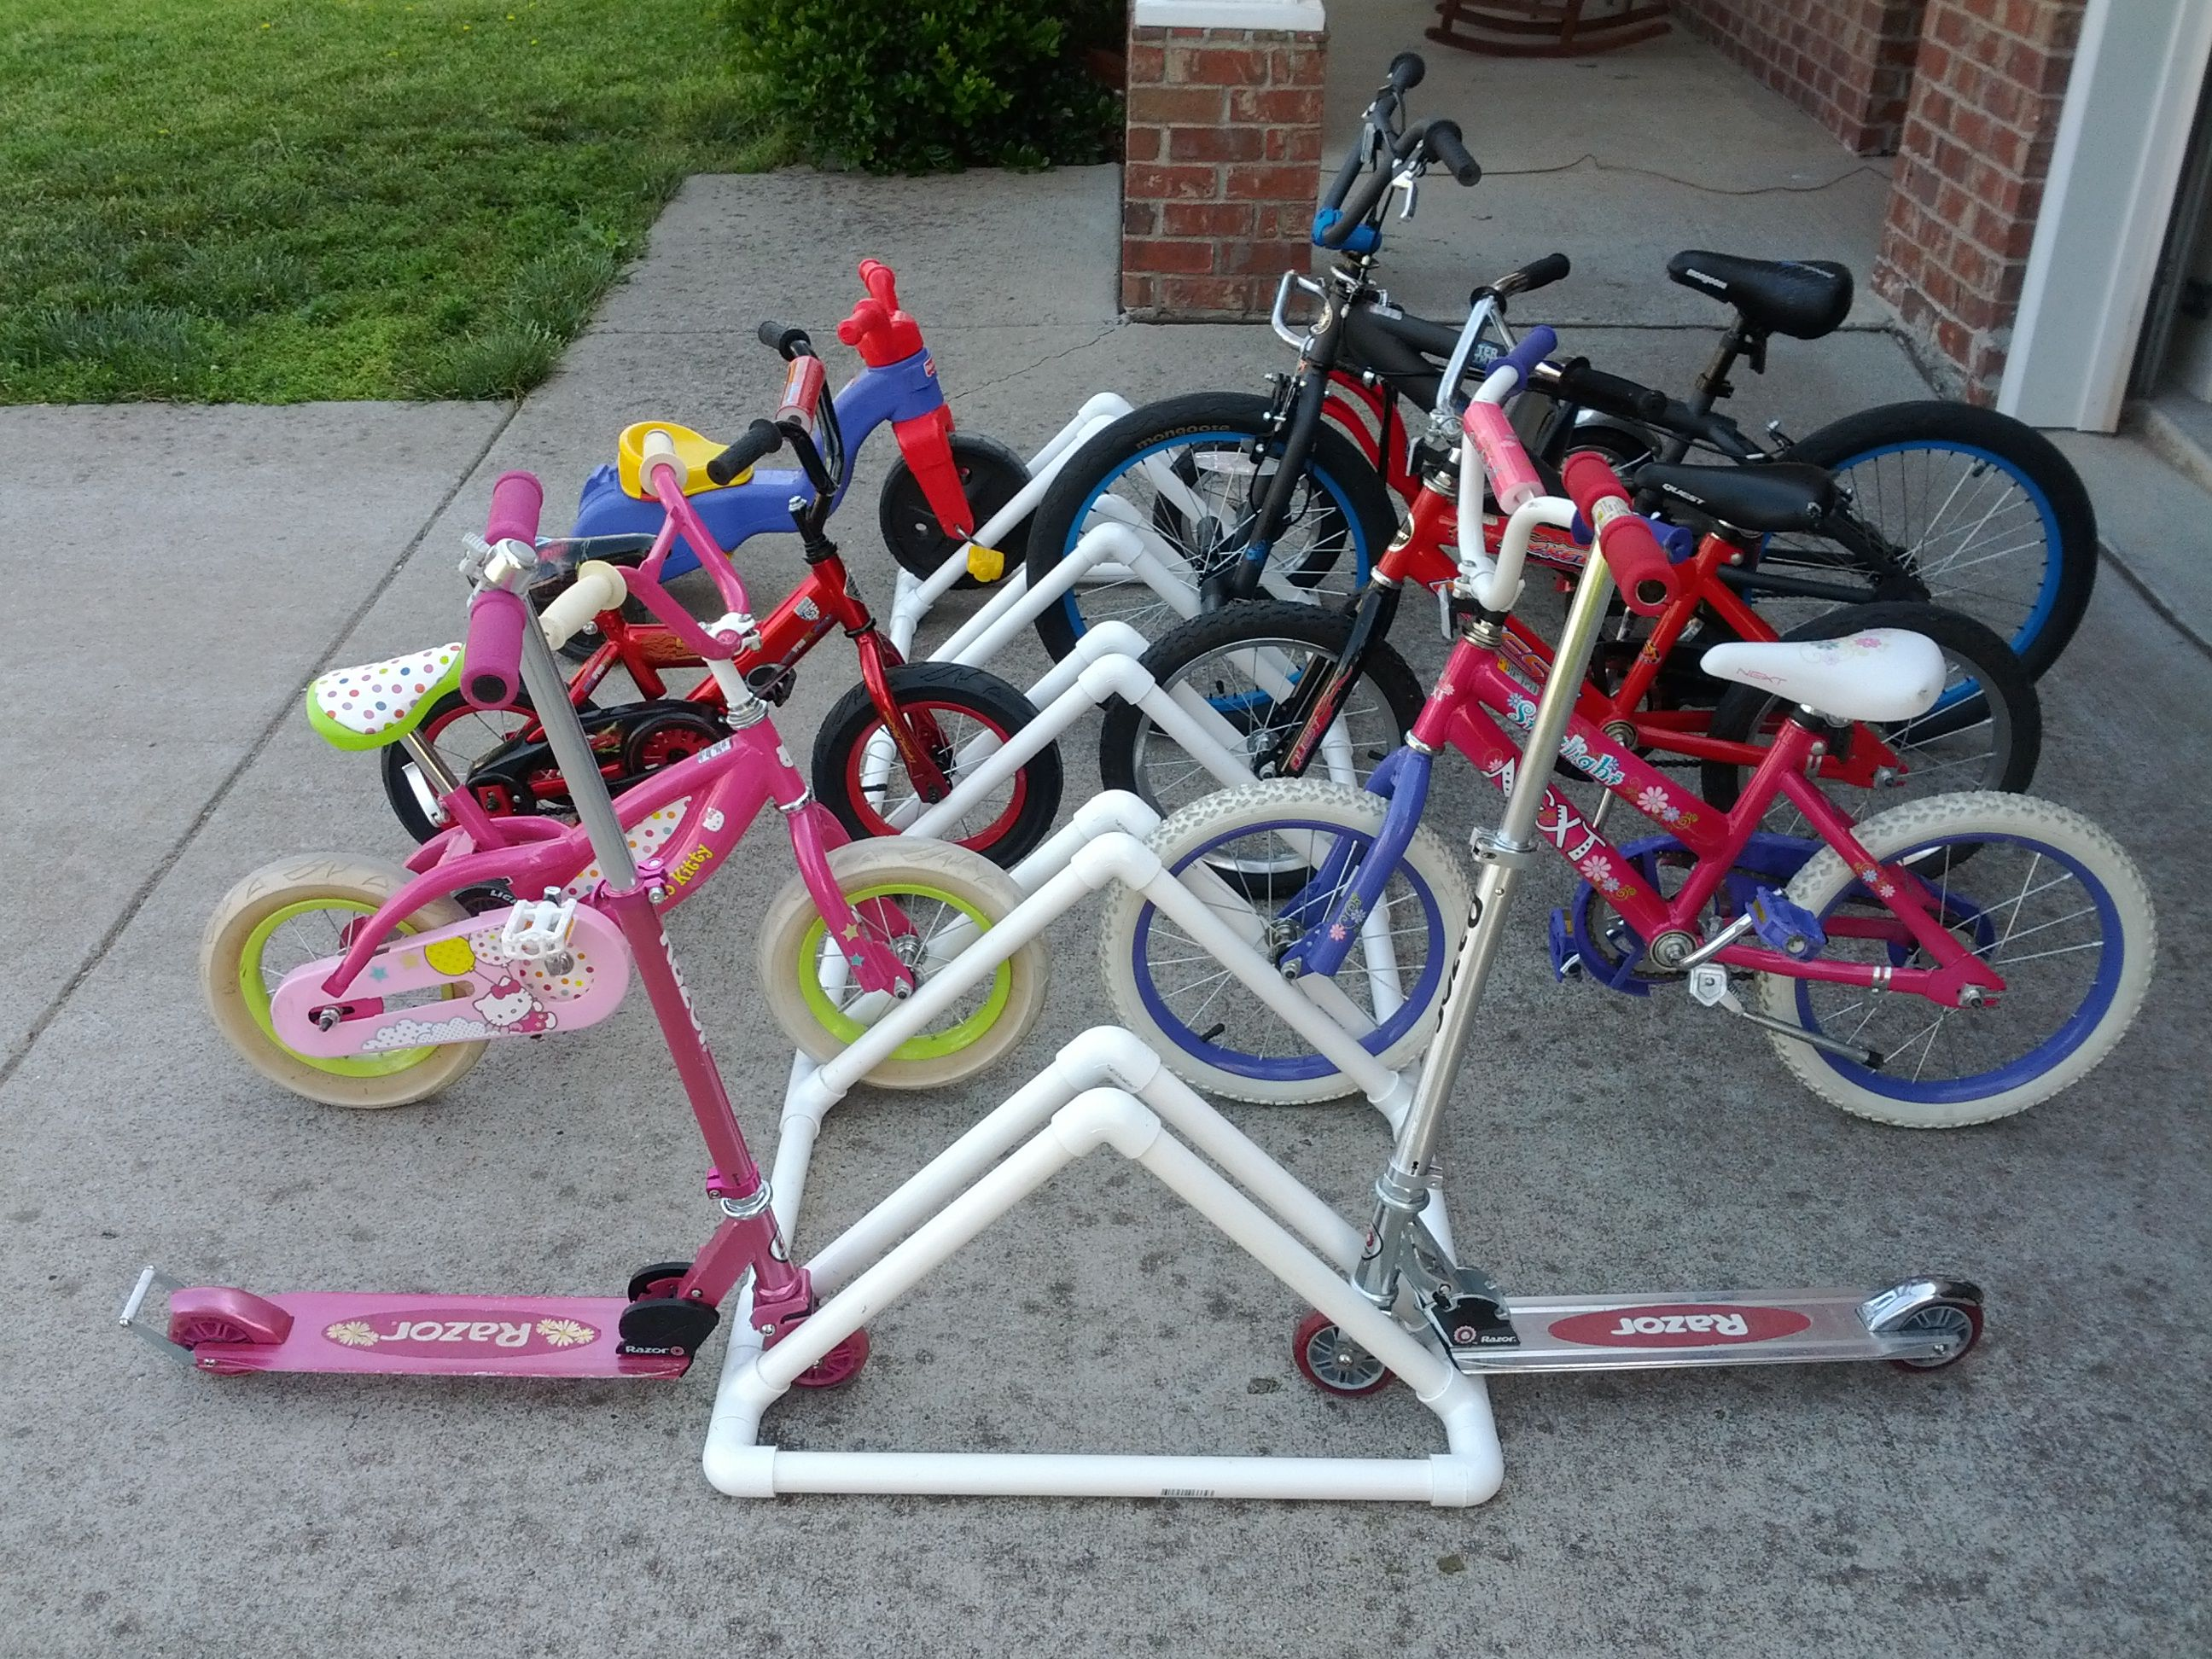 Project #4 – DIY Bike Rack Made from PVC Pipe | Pvc bike racks, Diy ...